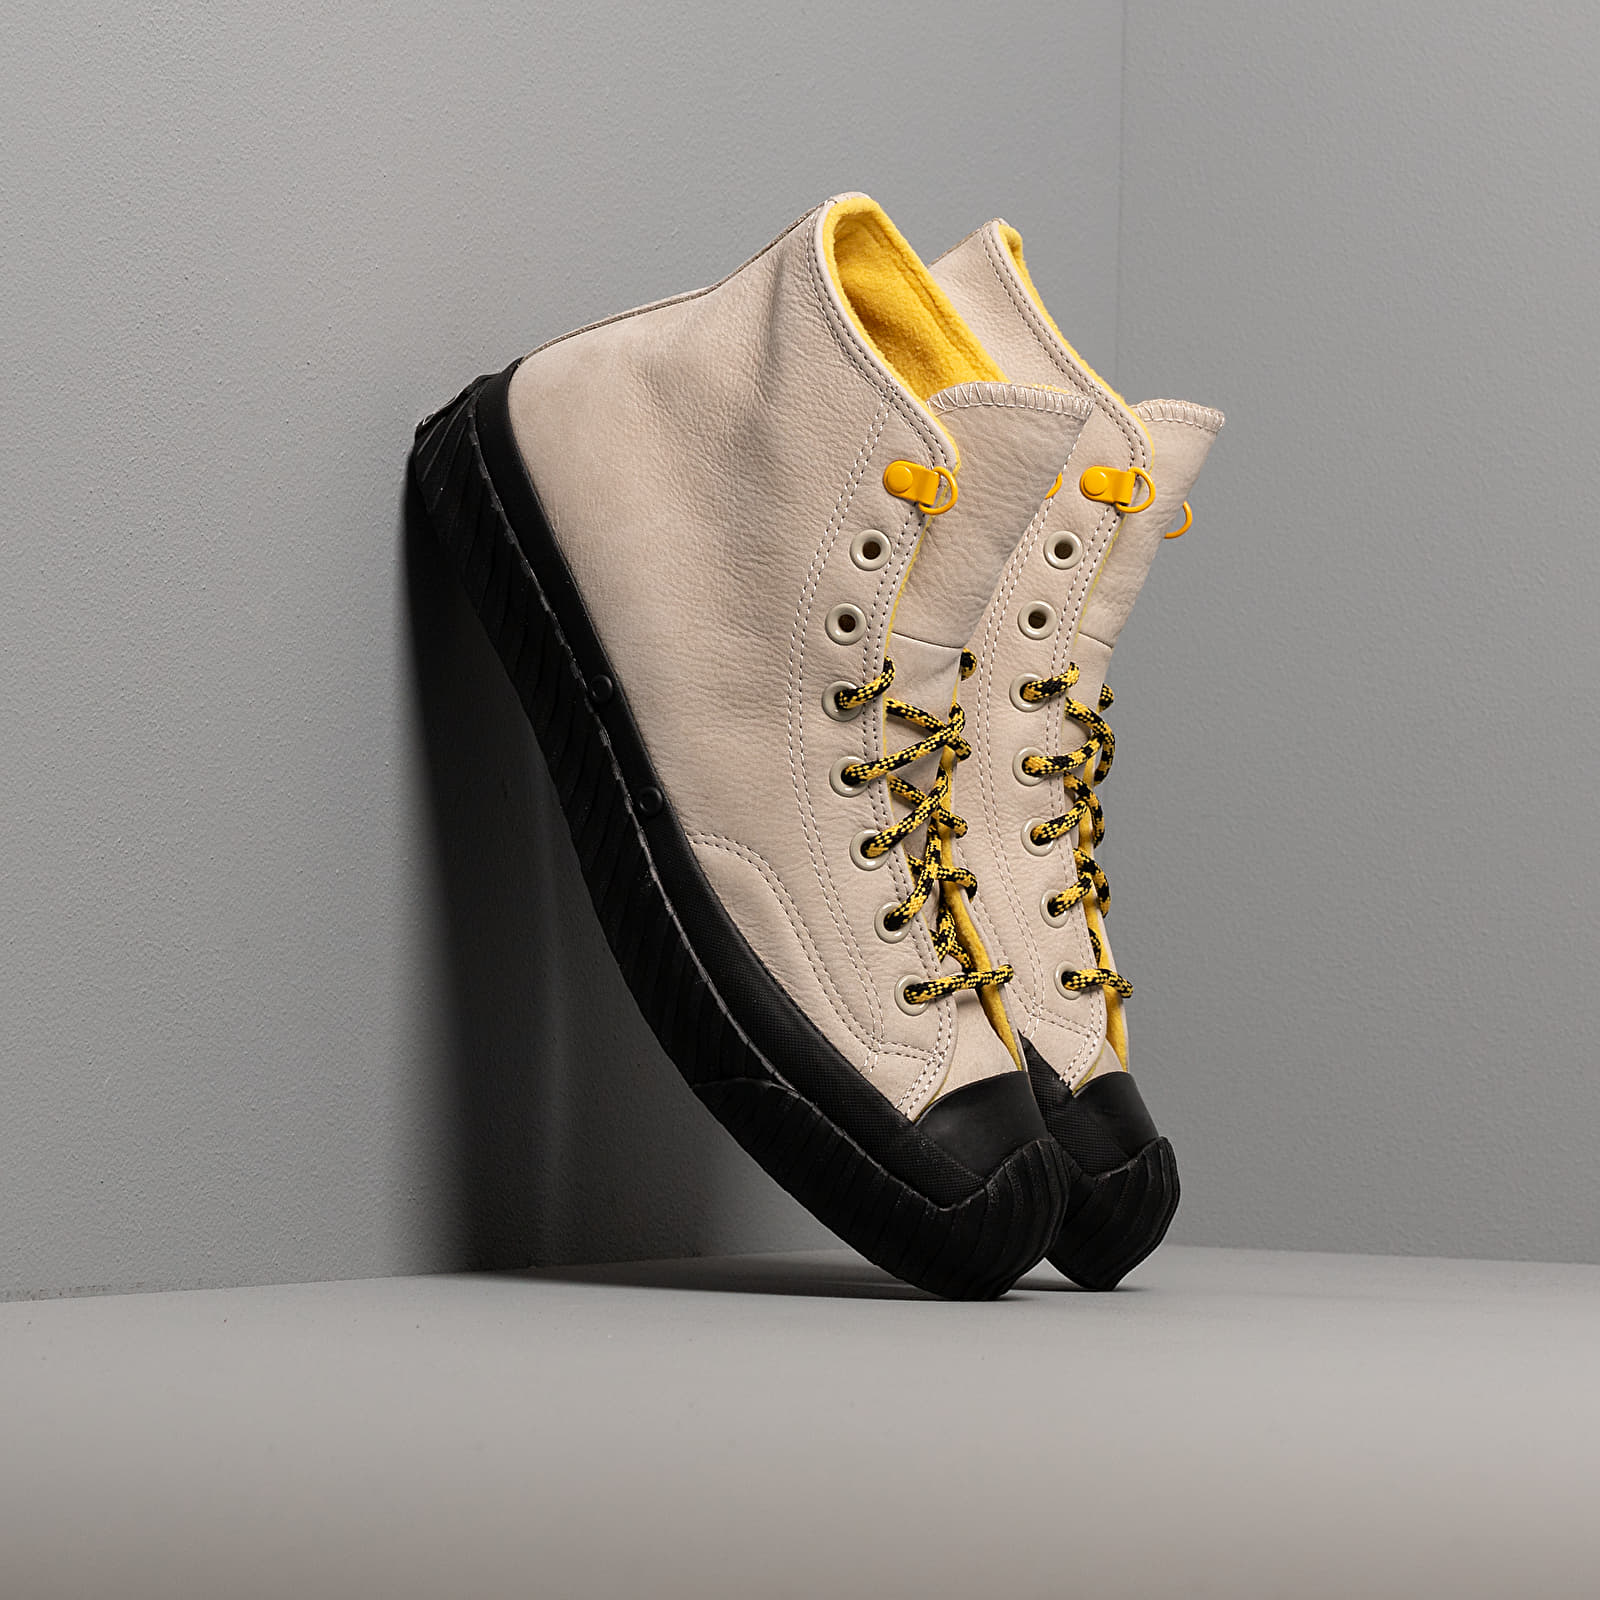 Converse Chuck 70 Bosey Water Repellent